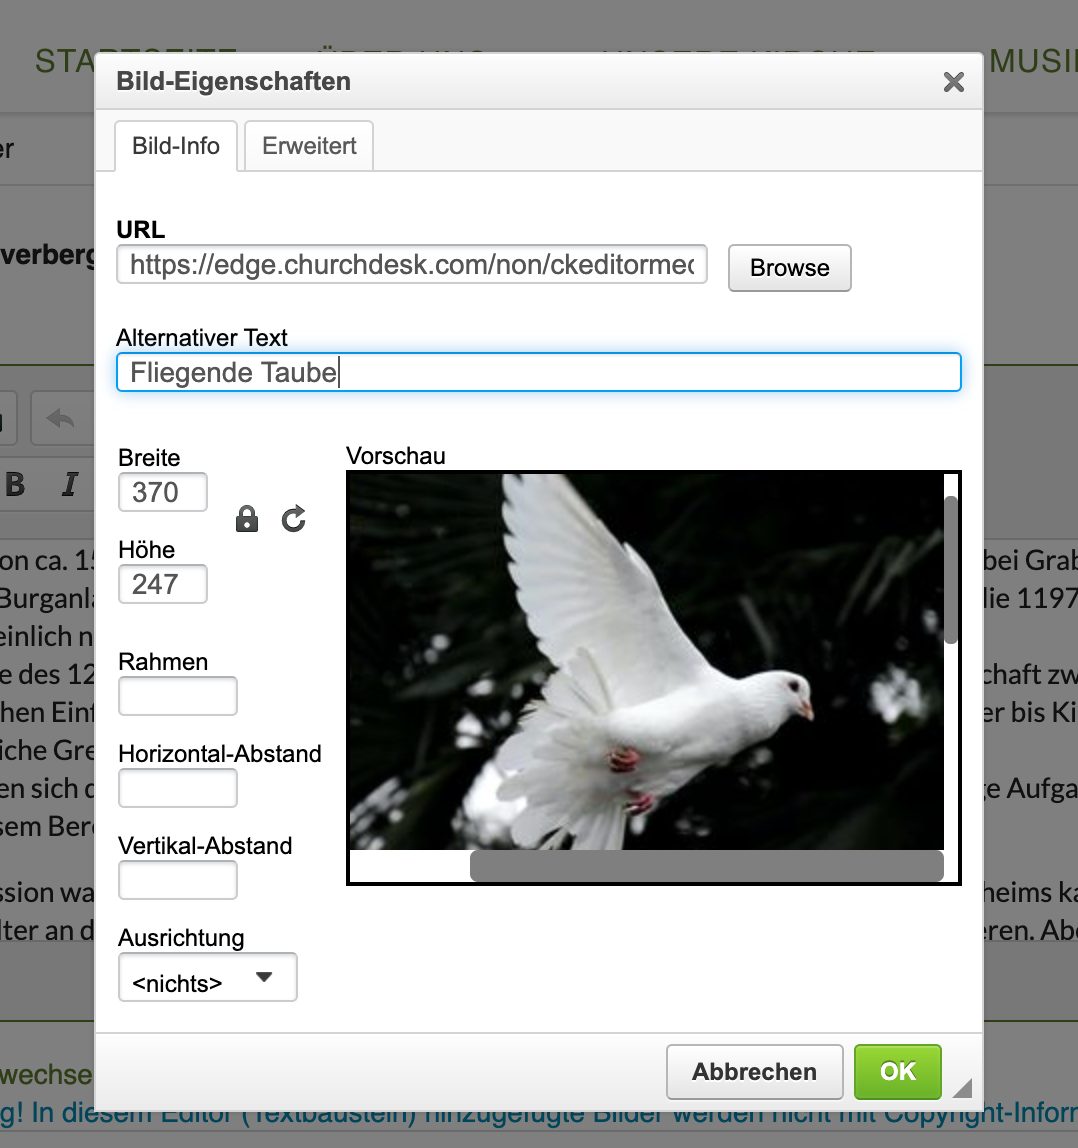 Add alt text to your images